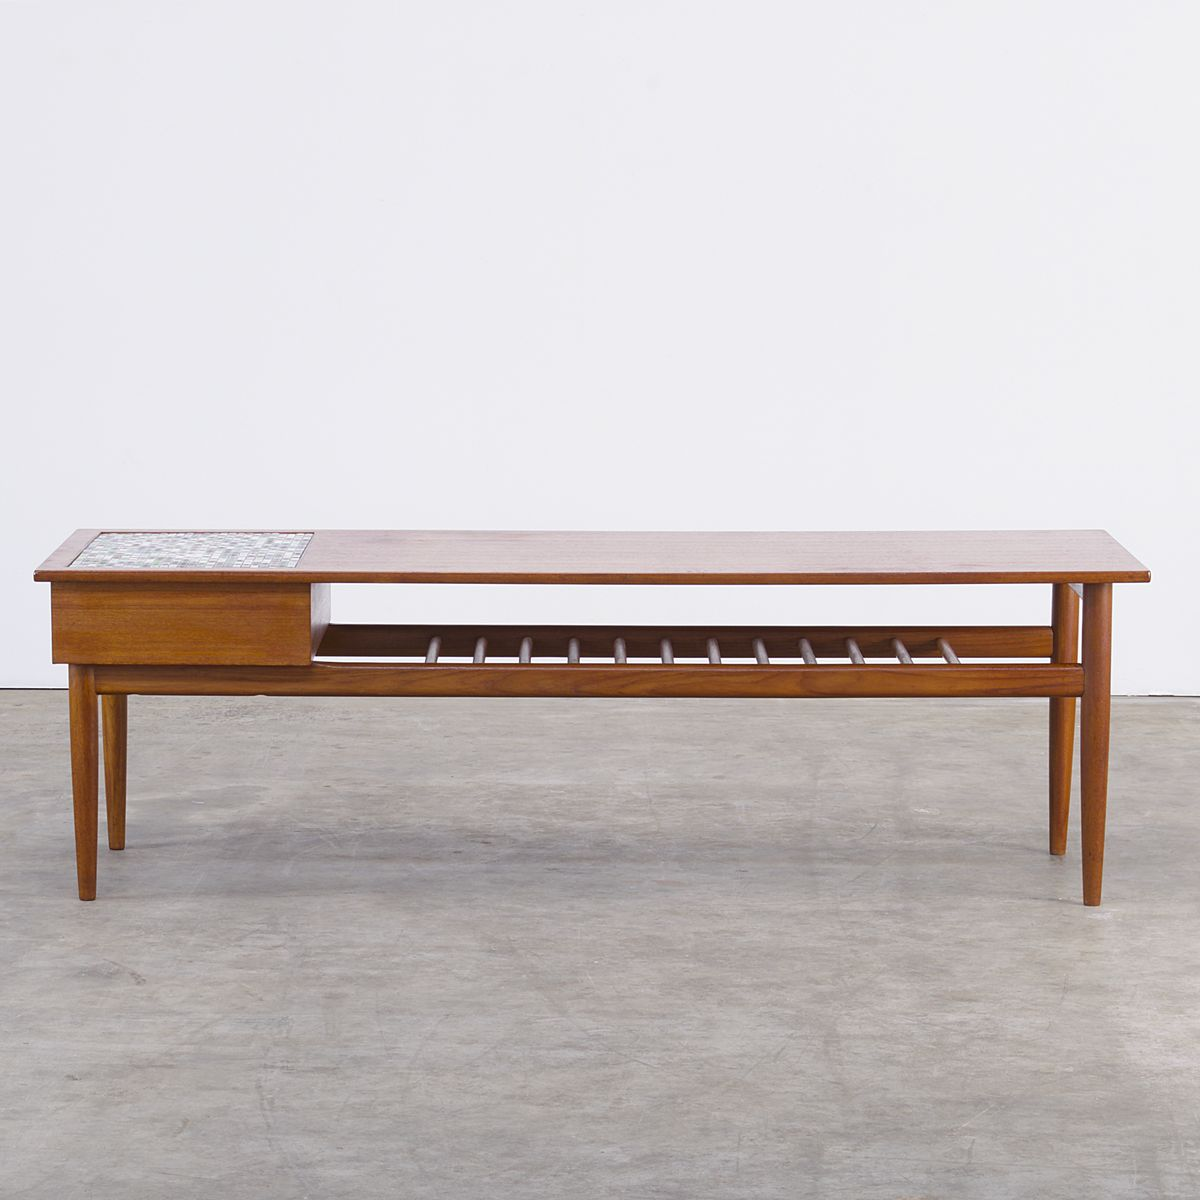 Teak tile coffee table 1960s for sale at pamono for Tile coffee table